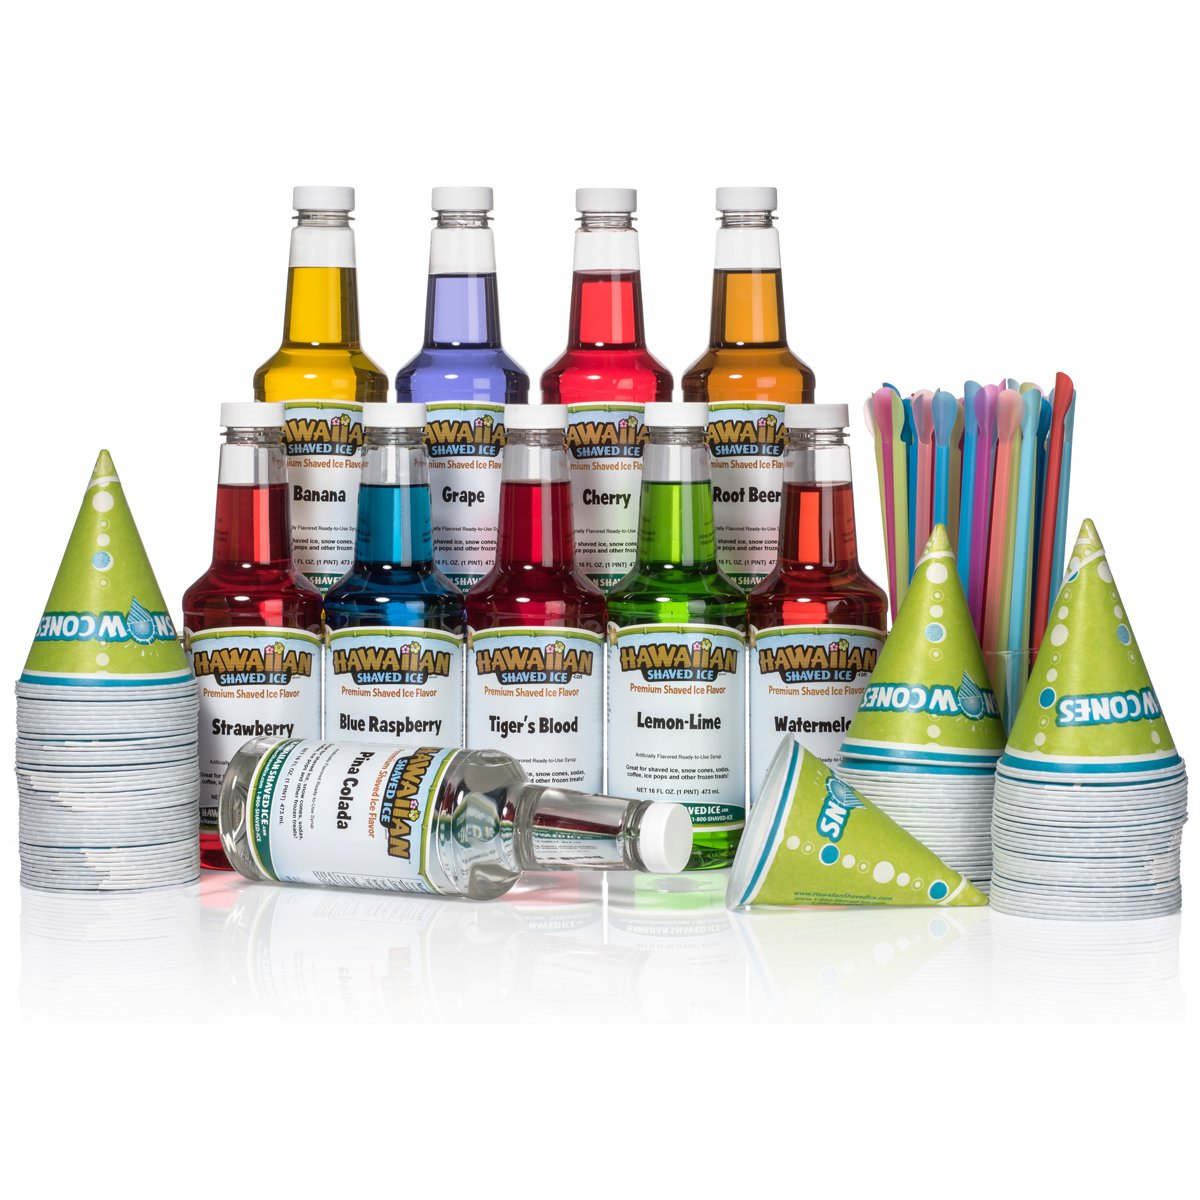 Hawaiian Shaved Ice 10 Flavor Fun Pack of Snow Cone Syrup, 10 pints | Kit Features 10 Snow Cone Syrup Flavors (16 oz. Each) & 10 black bottle pourers, 100 cups and 100 spoon straws by Hawaiian Shaved Ice (Image #1)